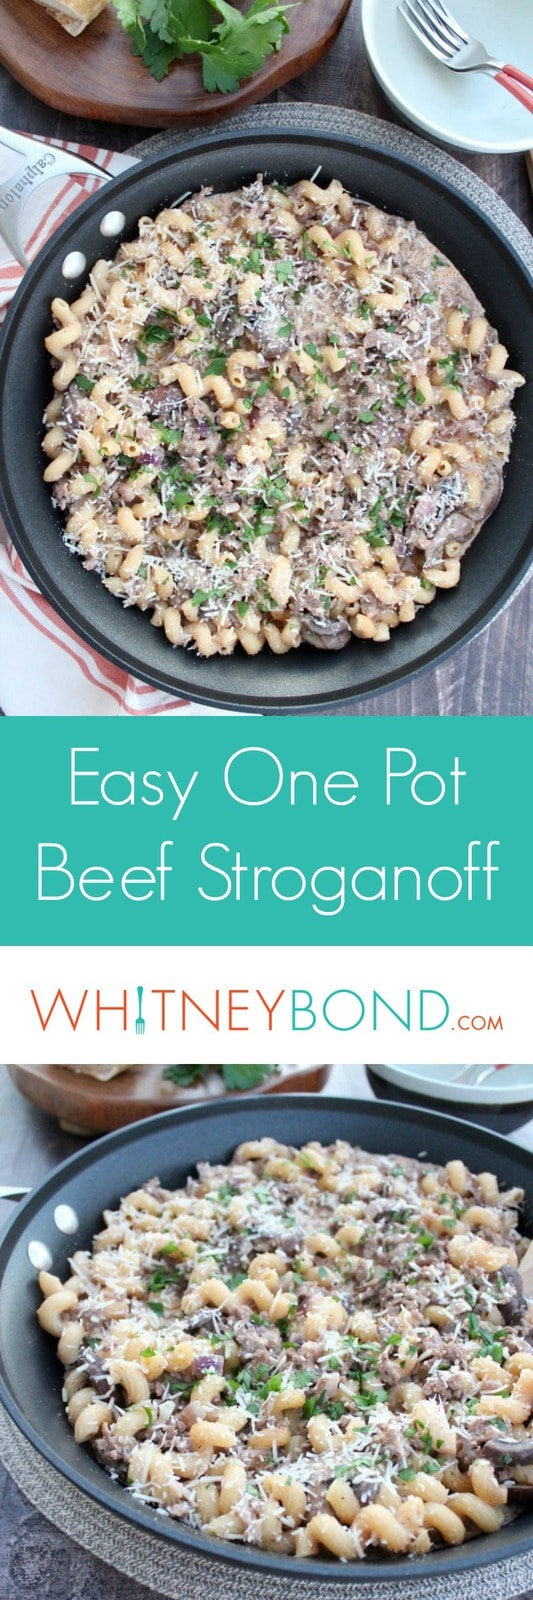 Easy One Pot Beef Stroganoff Recipe